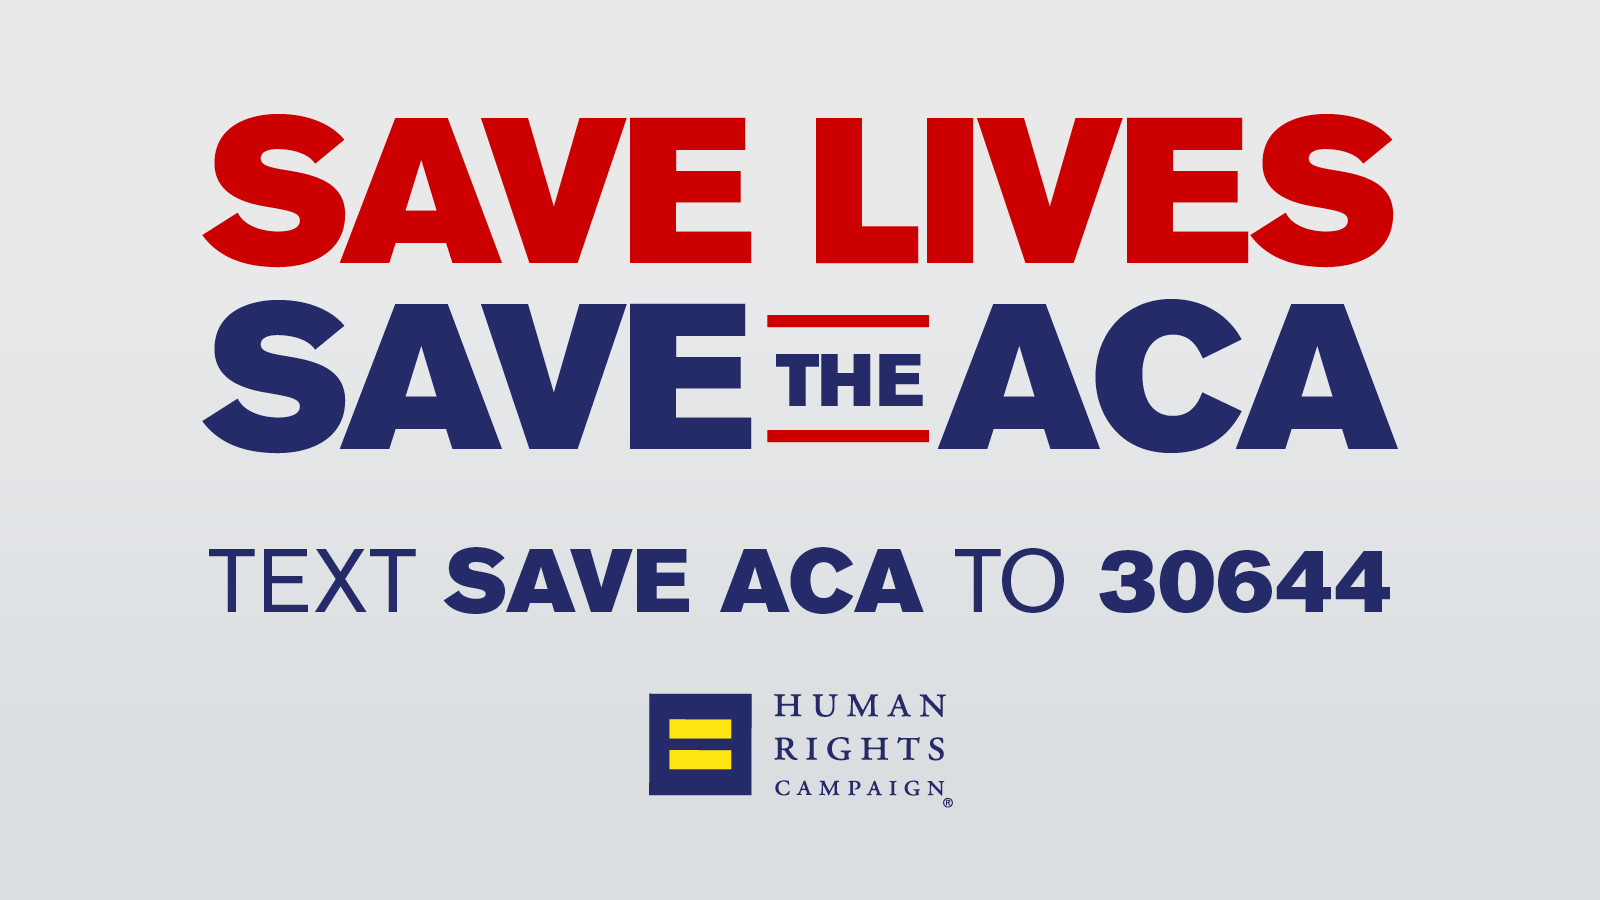 HRC Opposes Cassidy-Graham & Urges 'No' Vote on Bill That Would Harm LGBTQ Americans